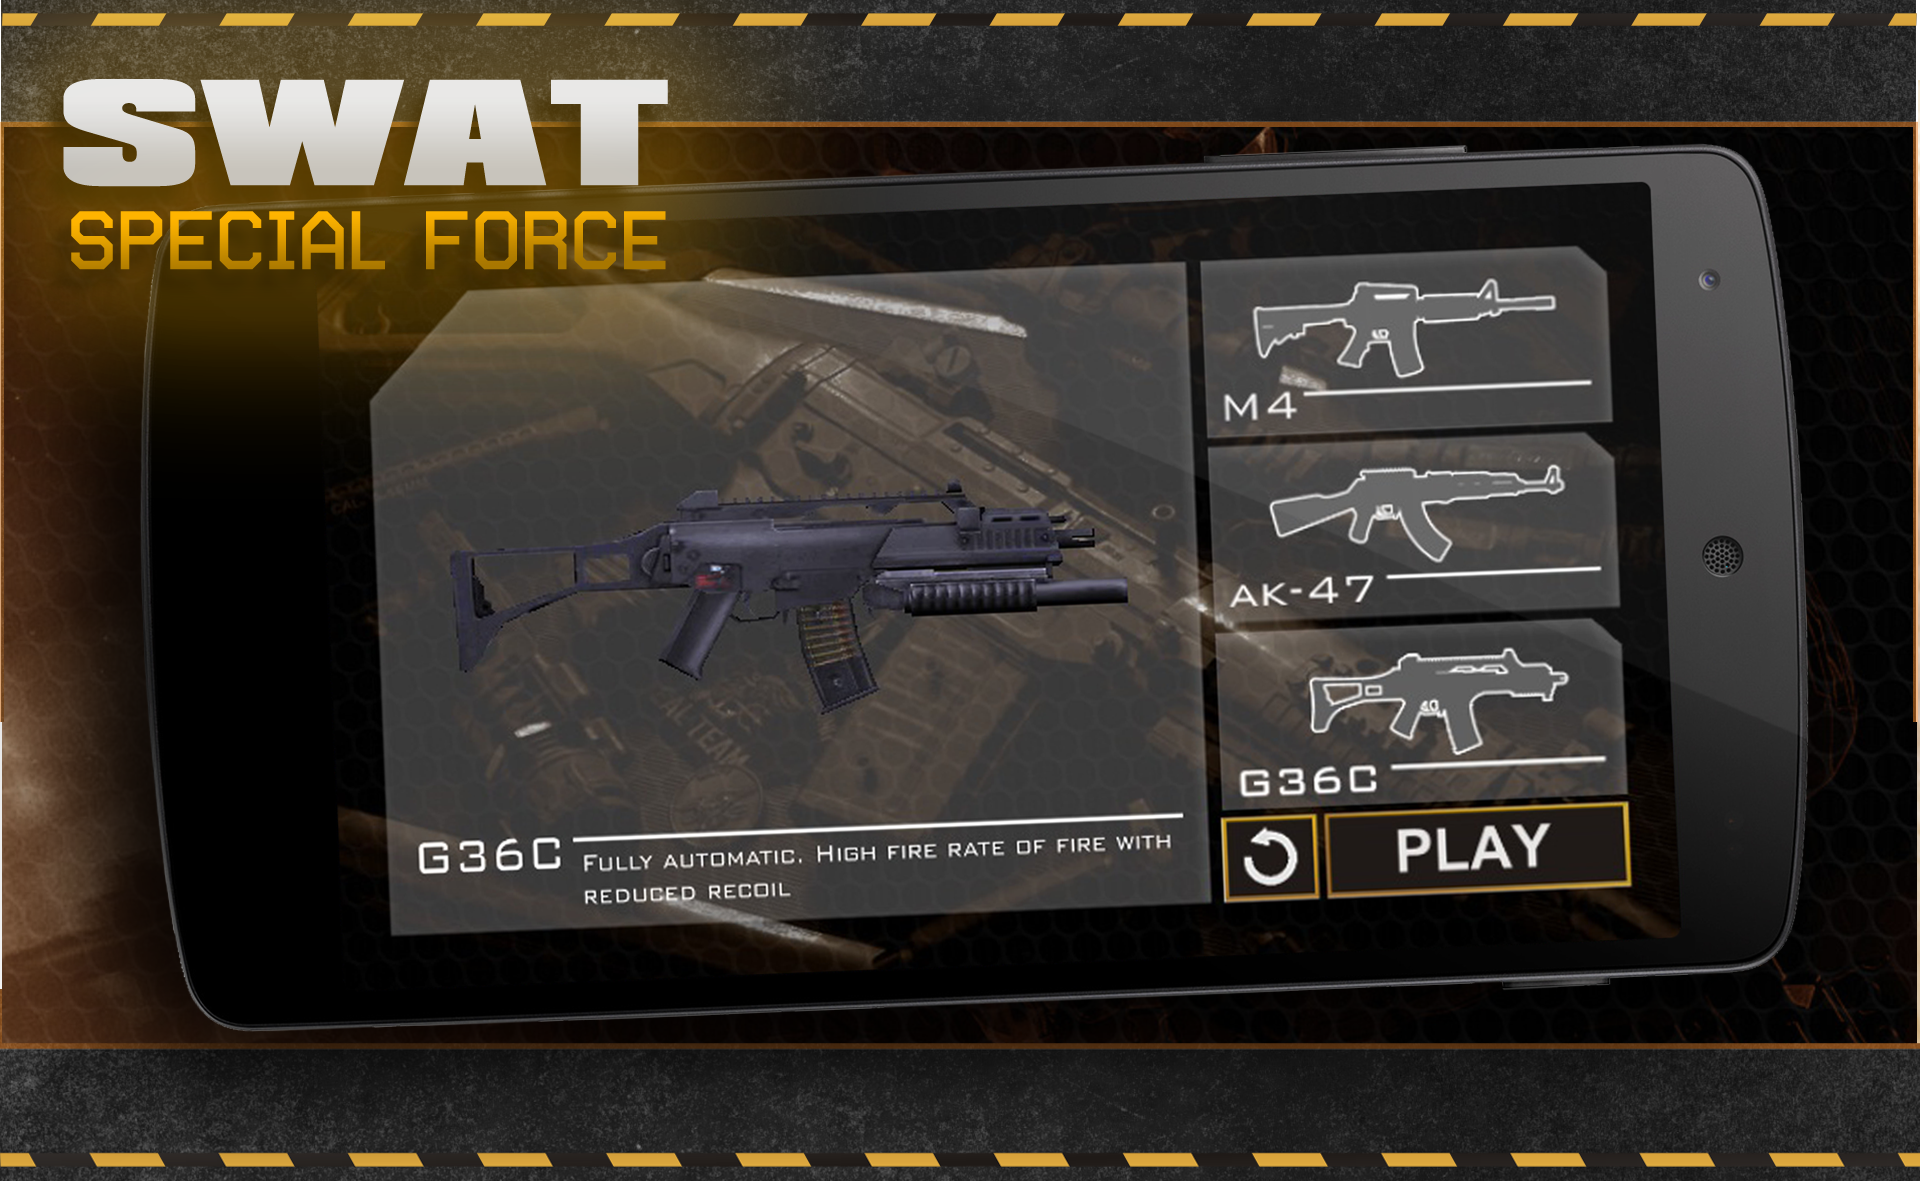 SWAT 3D war game shooter